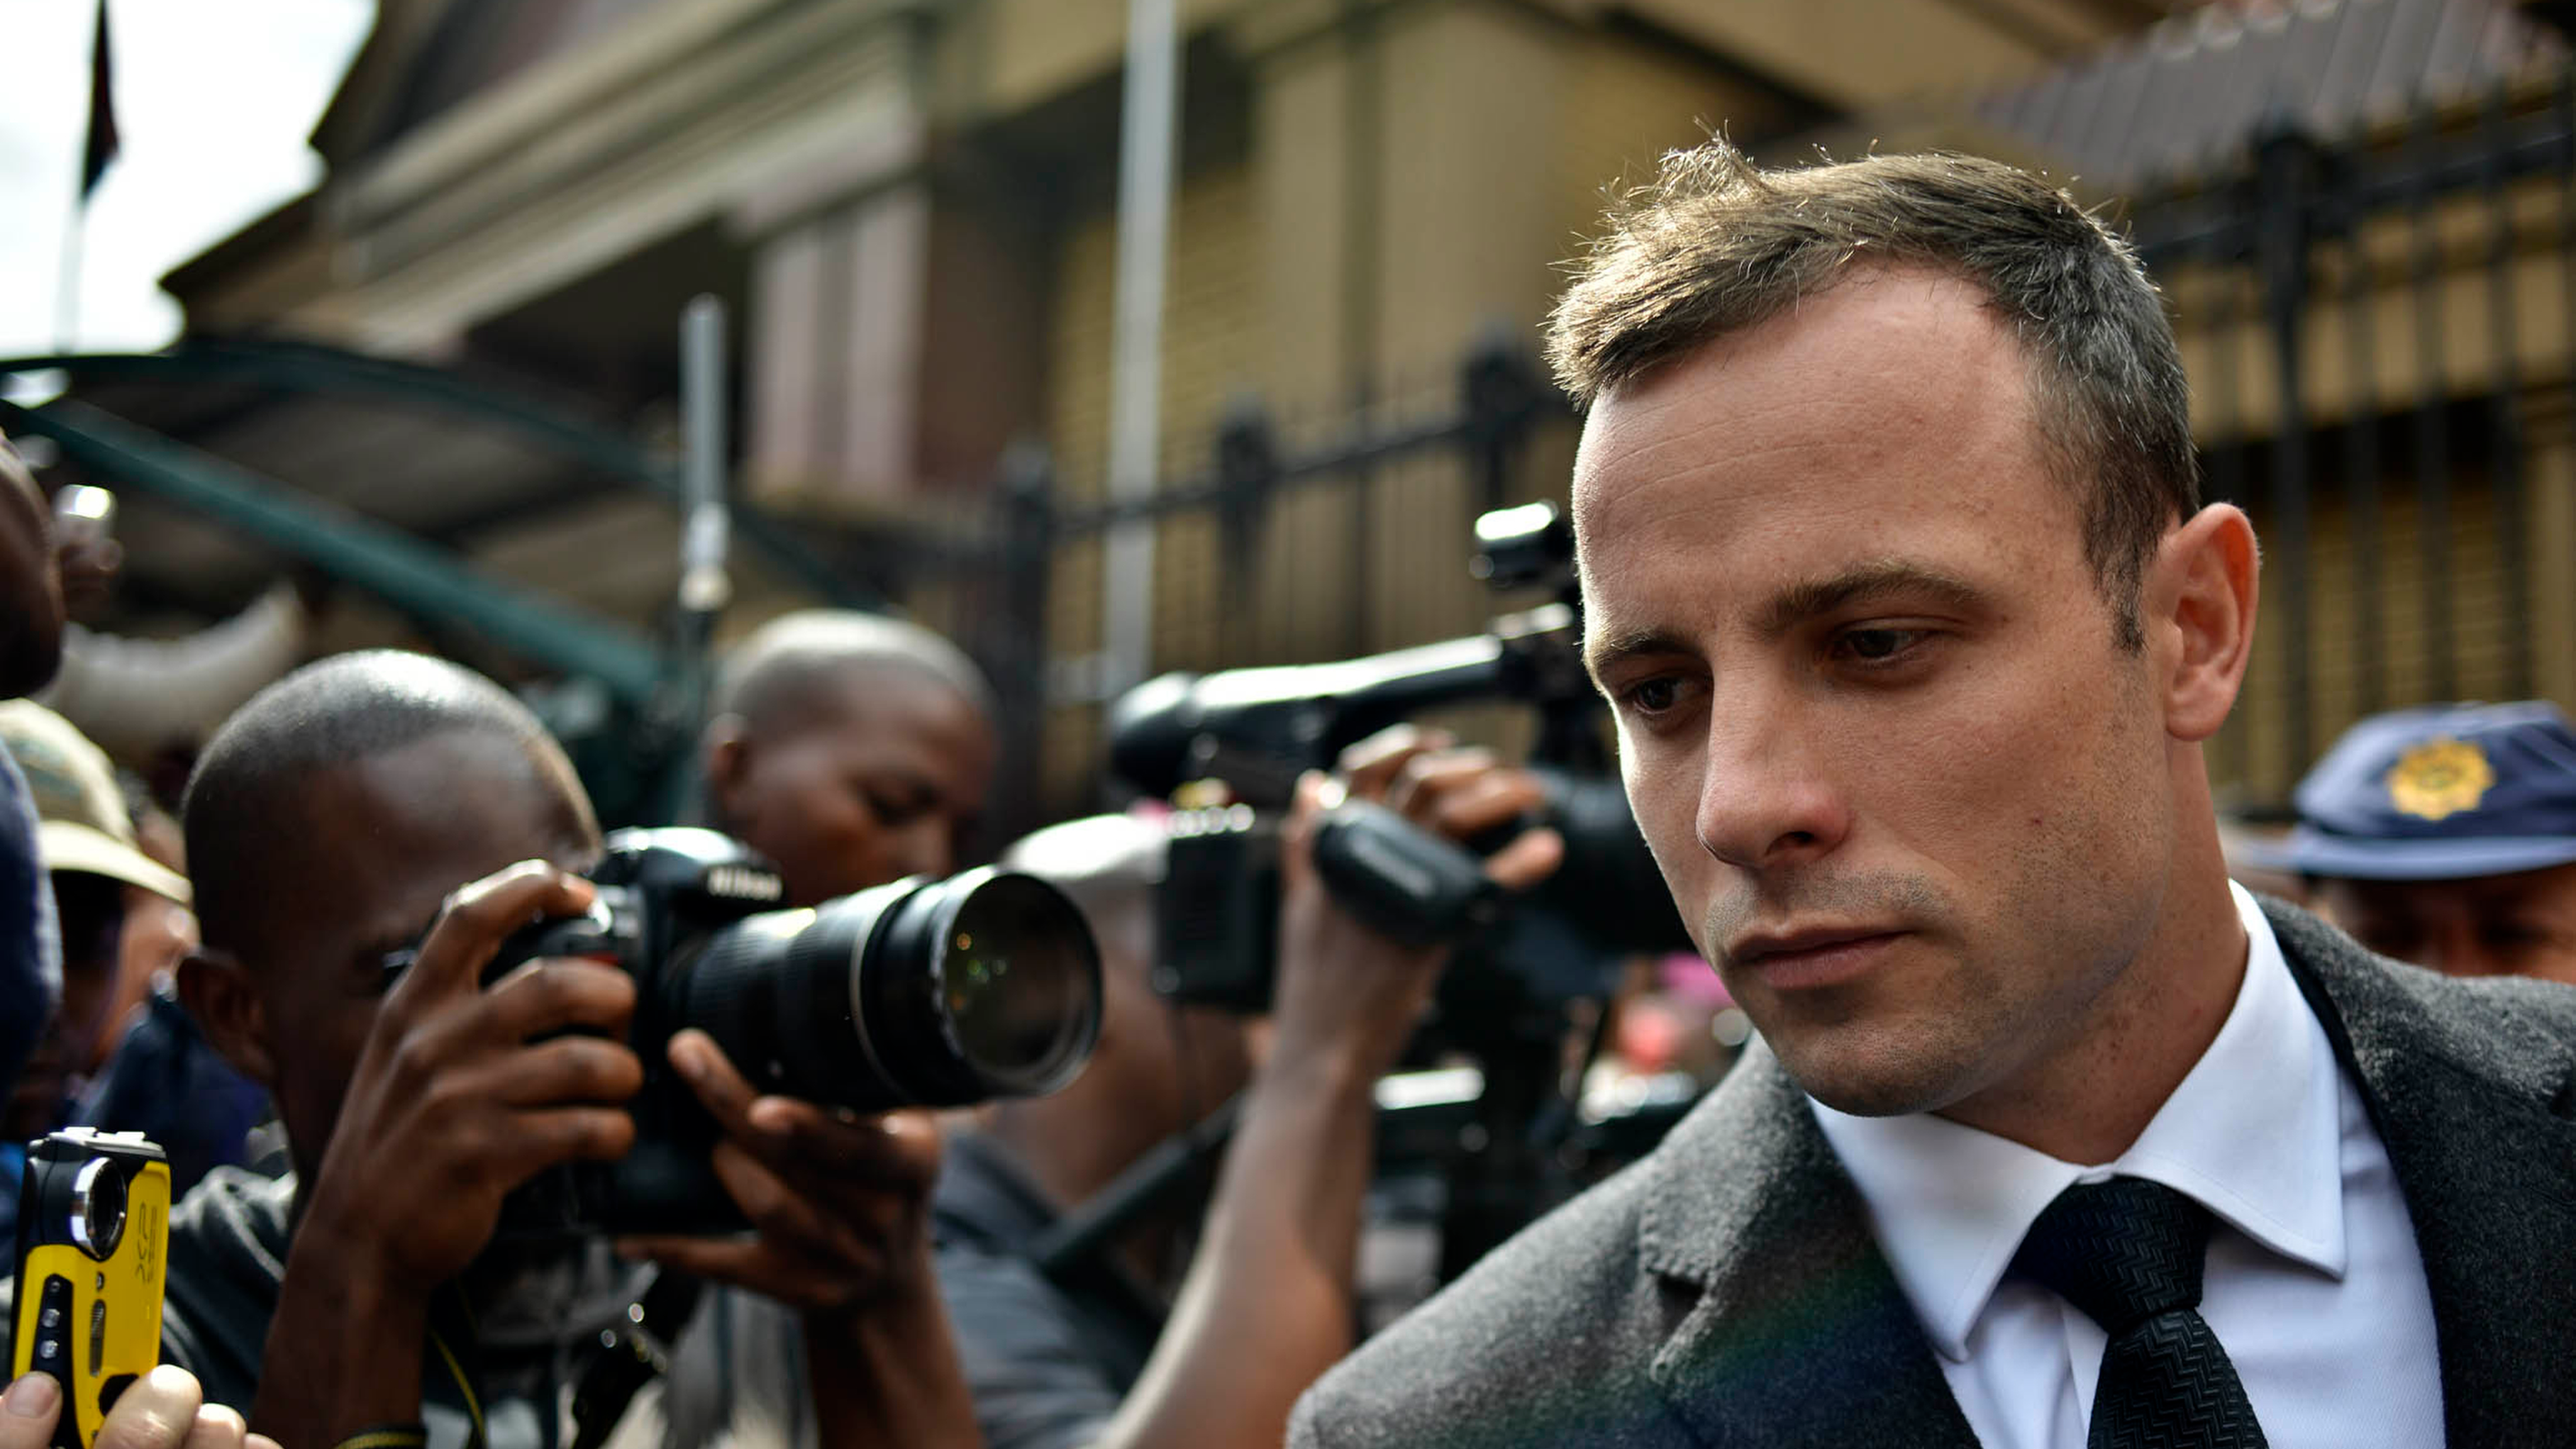 Oscar Pistorius Has Been Injured In A Prison Brawl After Arguing With Another Inmate